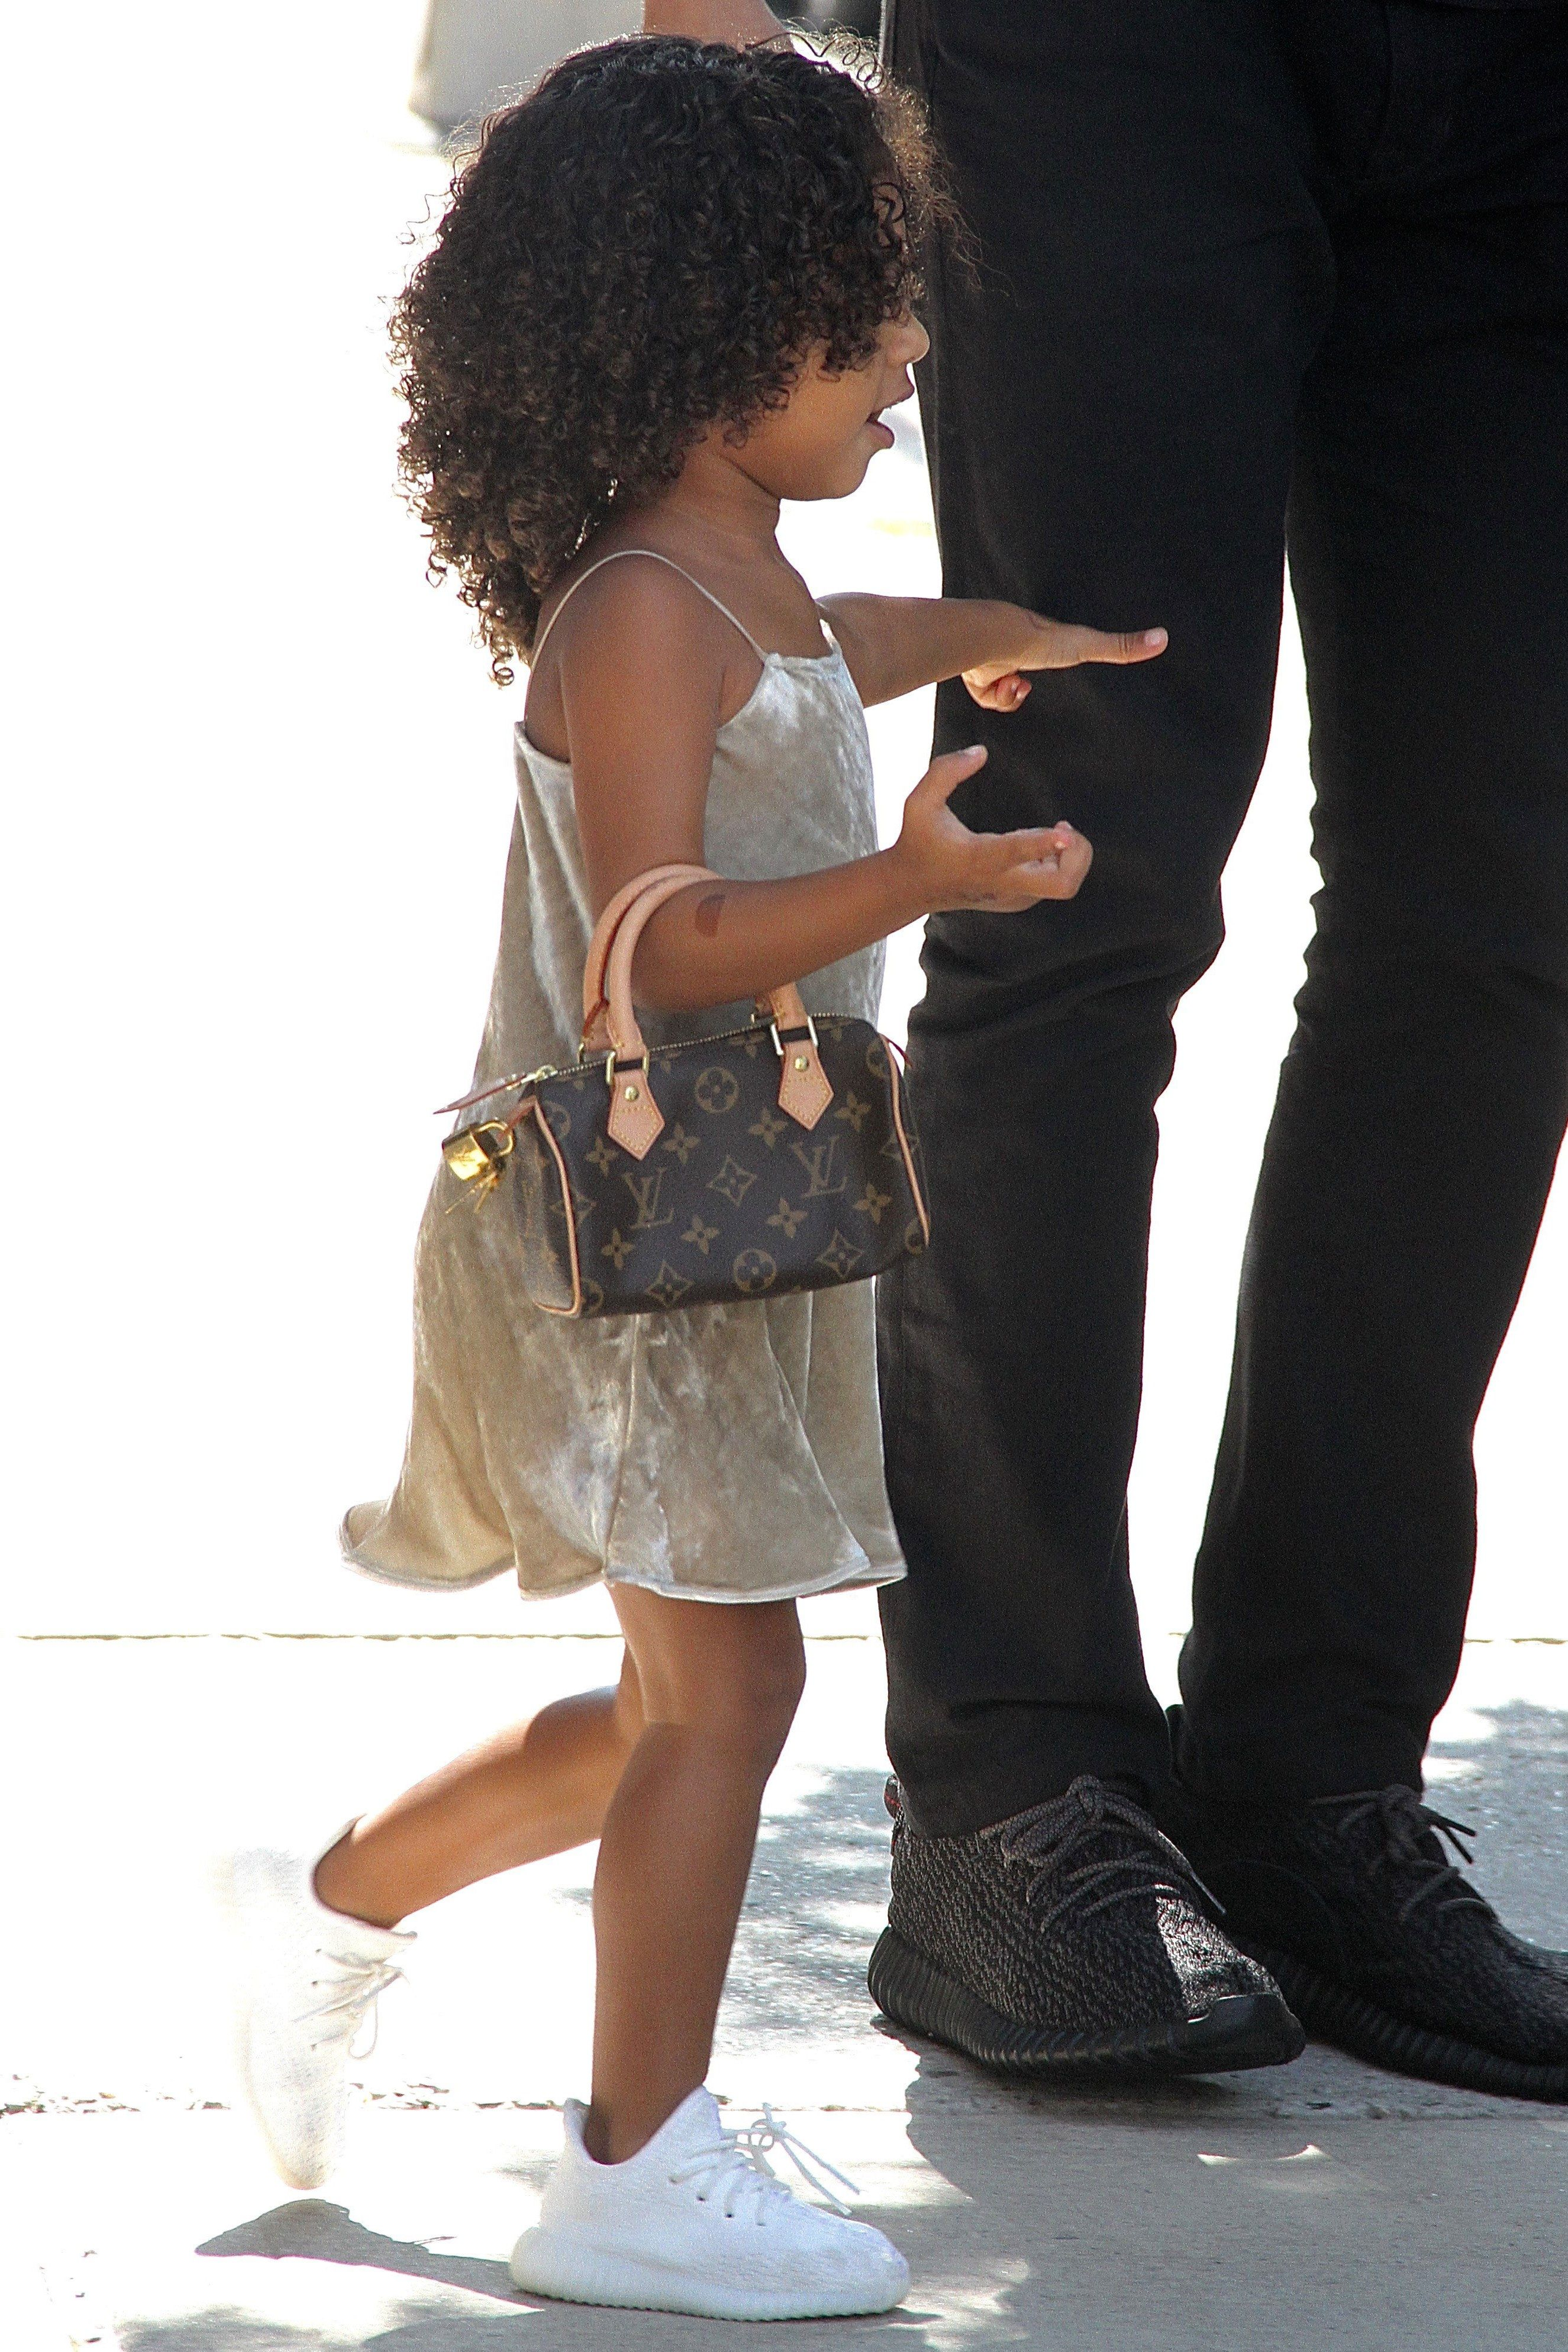 North West S Tiny Louis Vuitton Purse Costs More Than The Iphone 7 North West Kardashian Fashion Week Outfit Fashion